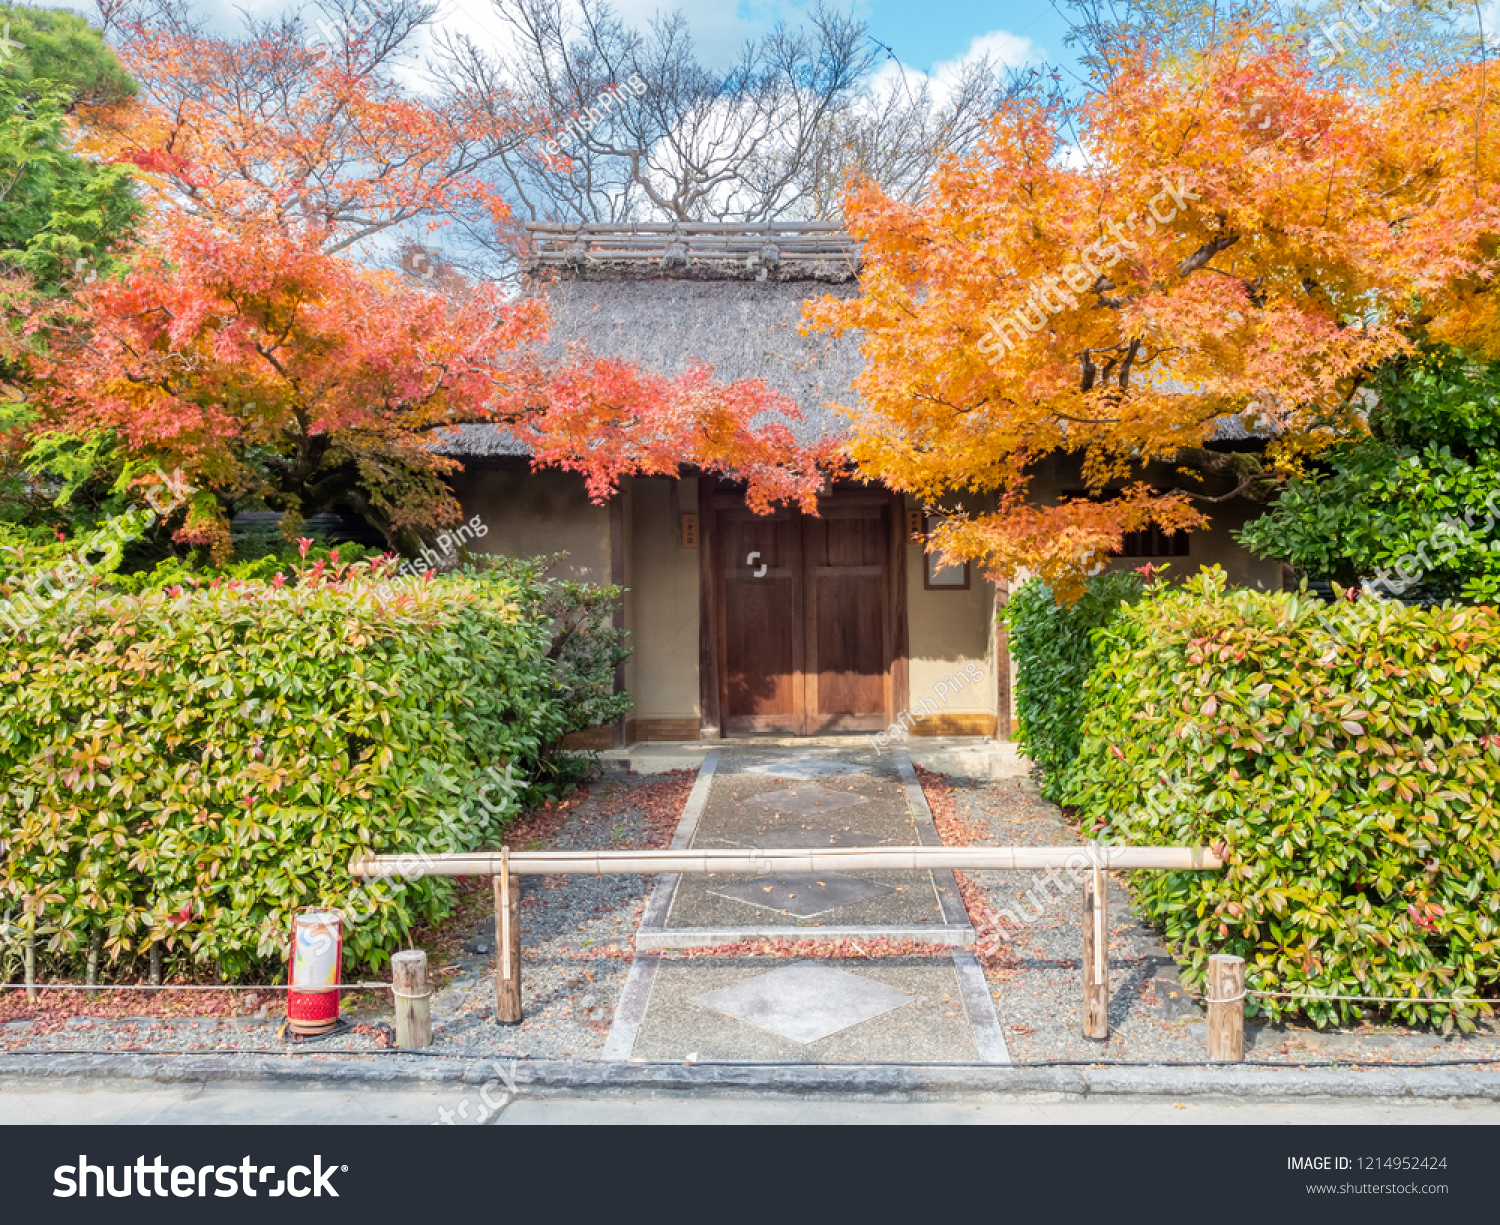 Exterior Design Classic Japanese Style House Stock Photo Edit Now 1214952424,Best Fonts For Graphic Design